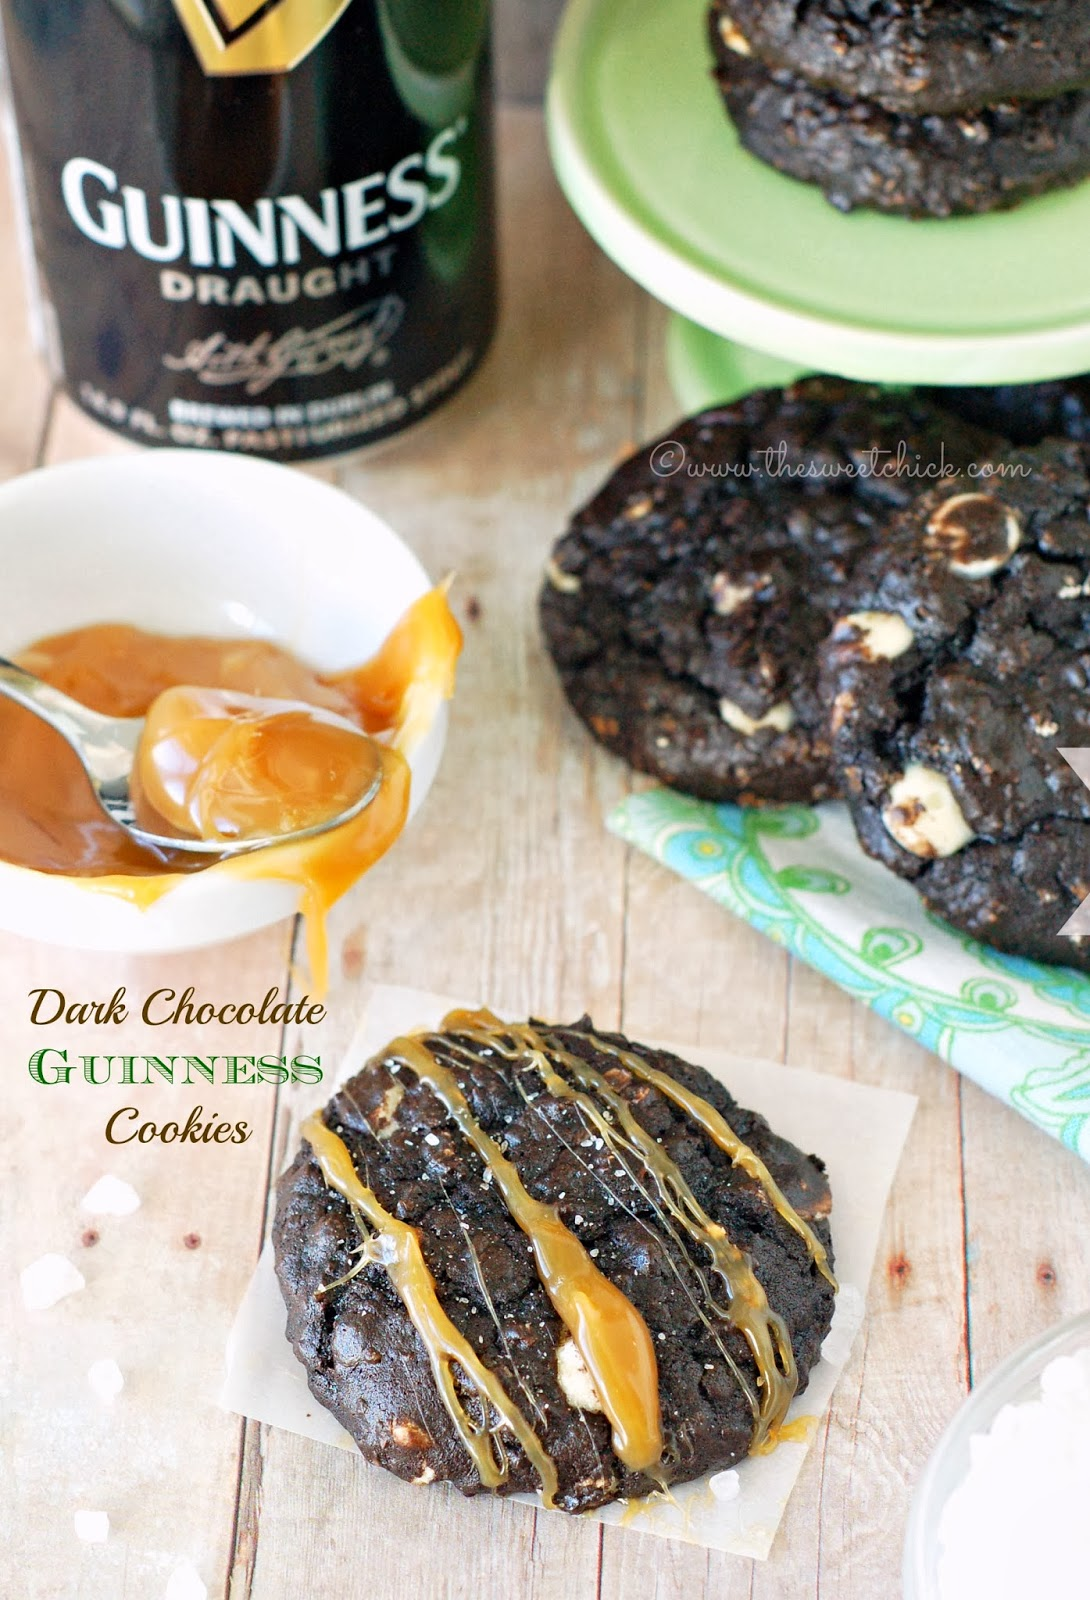 Dark Chocolate Guinness Cookies by The Sweet Chick